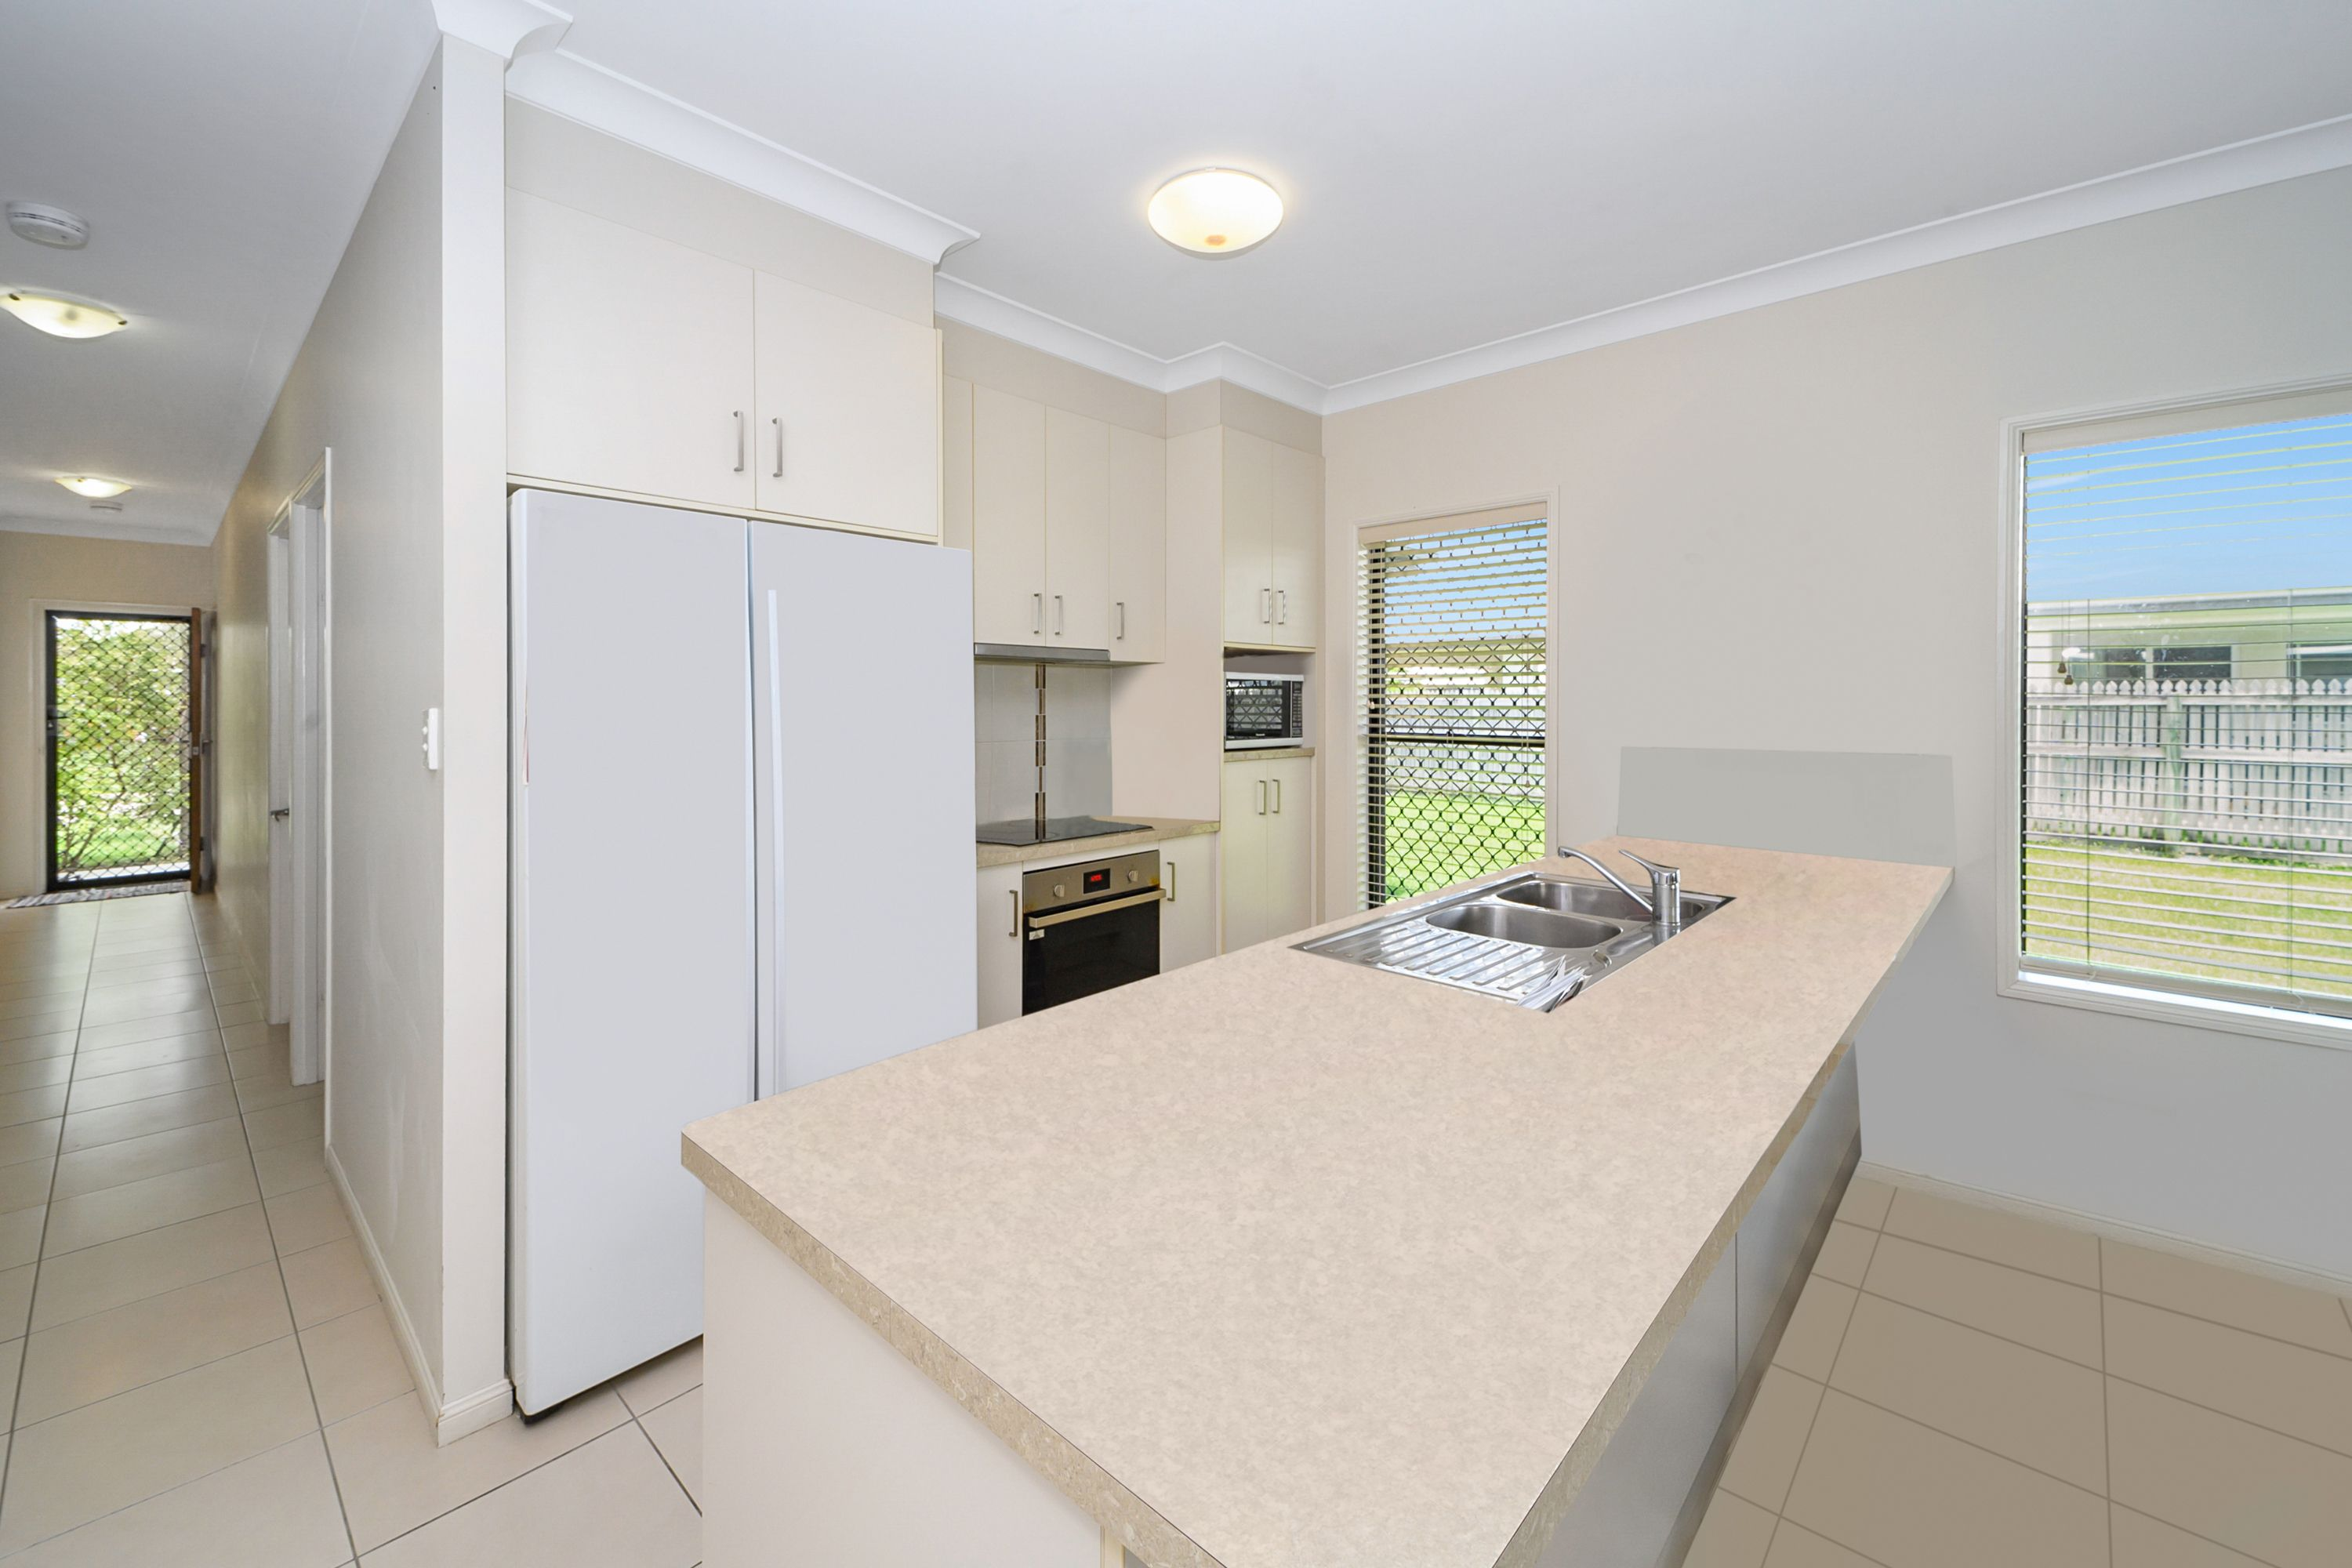 20 Romboli Court, Burdell, QLD 4818